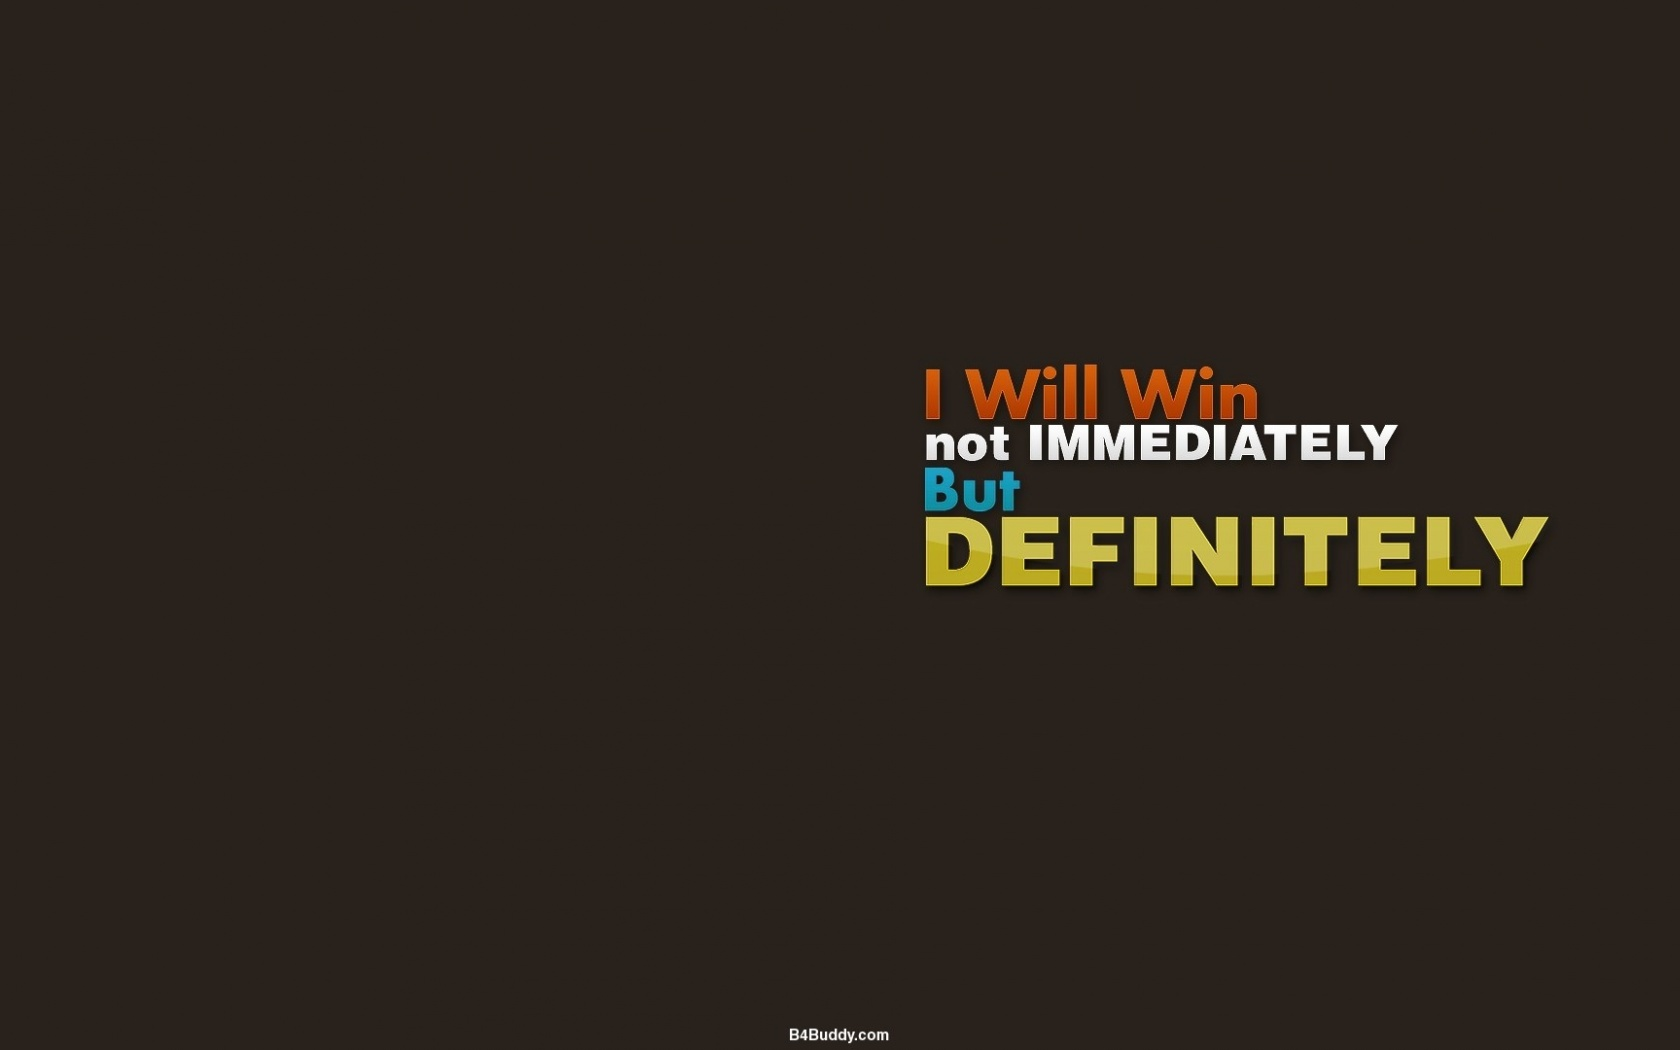 1680x1050 Motivational Quote Wallpaper desktop PC and Mac wallpaper 9qauhlw6